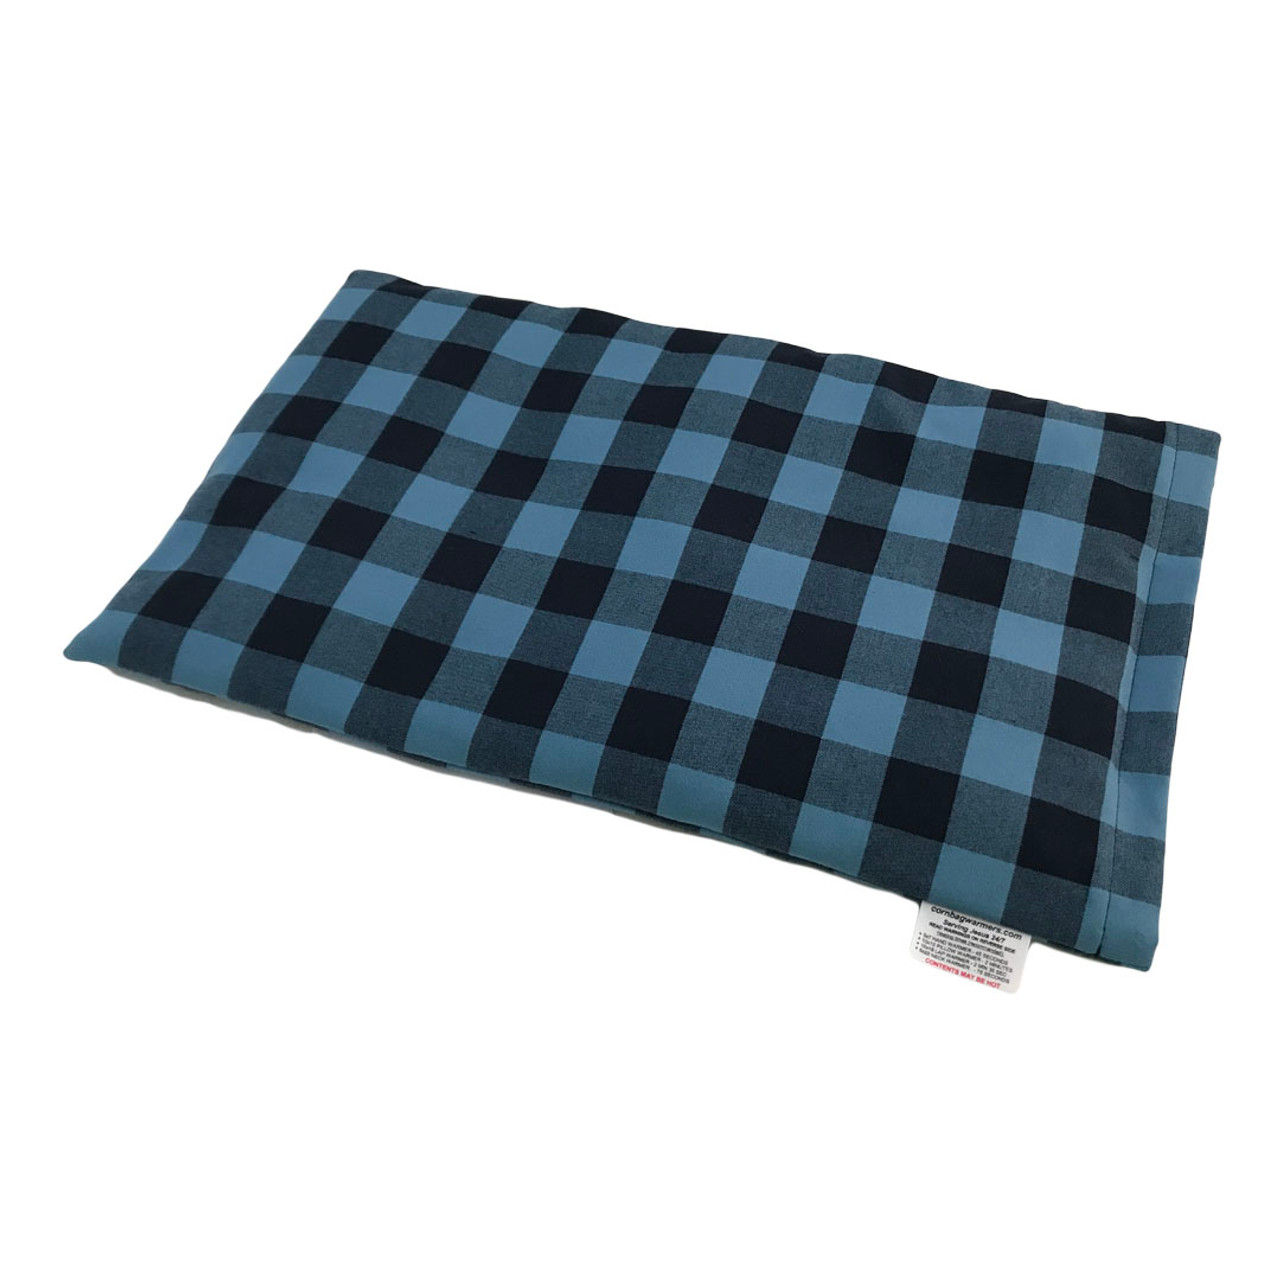 Light Blue & Black Plaid Lap Warmer Corn Bag Warmer -Beautiful!